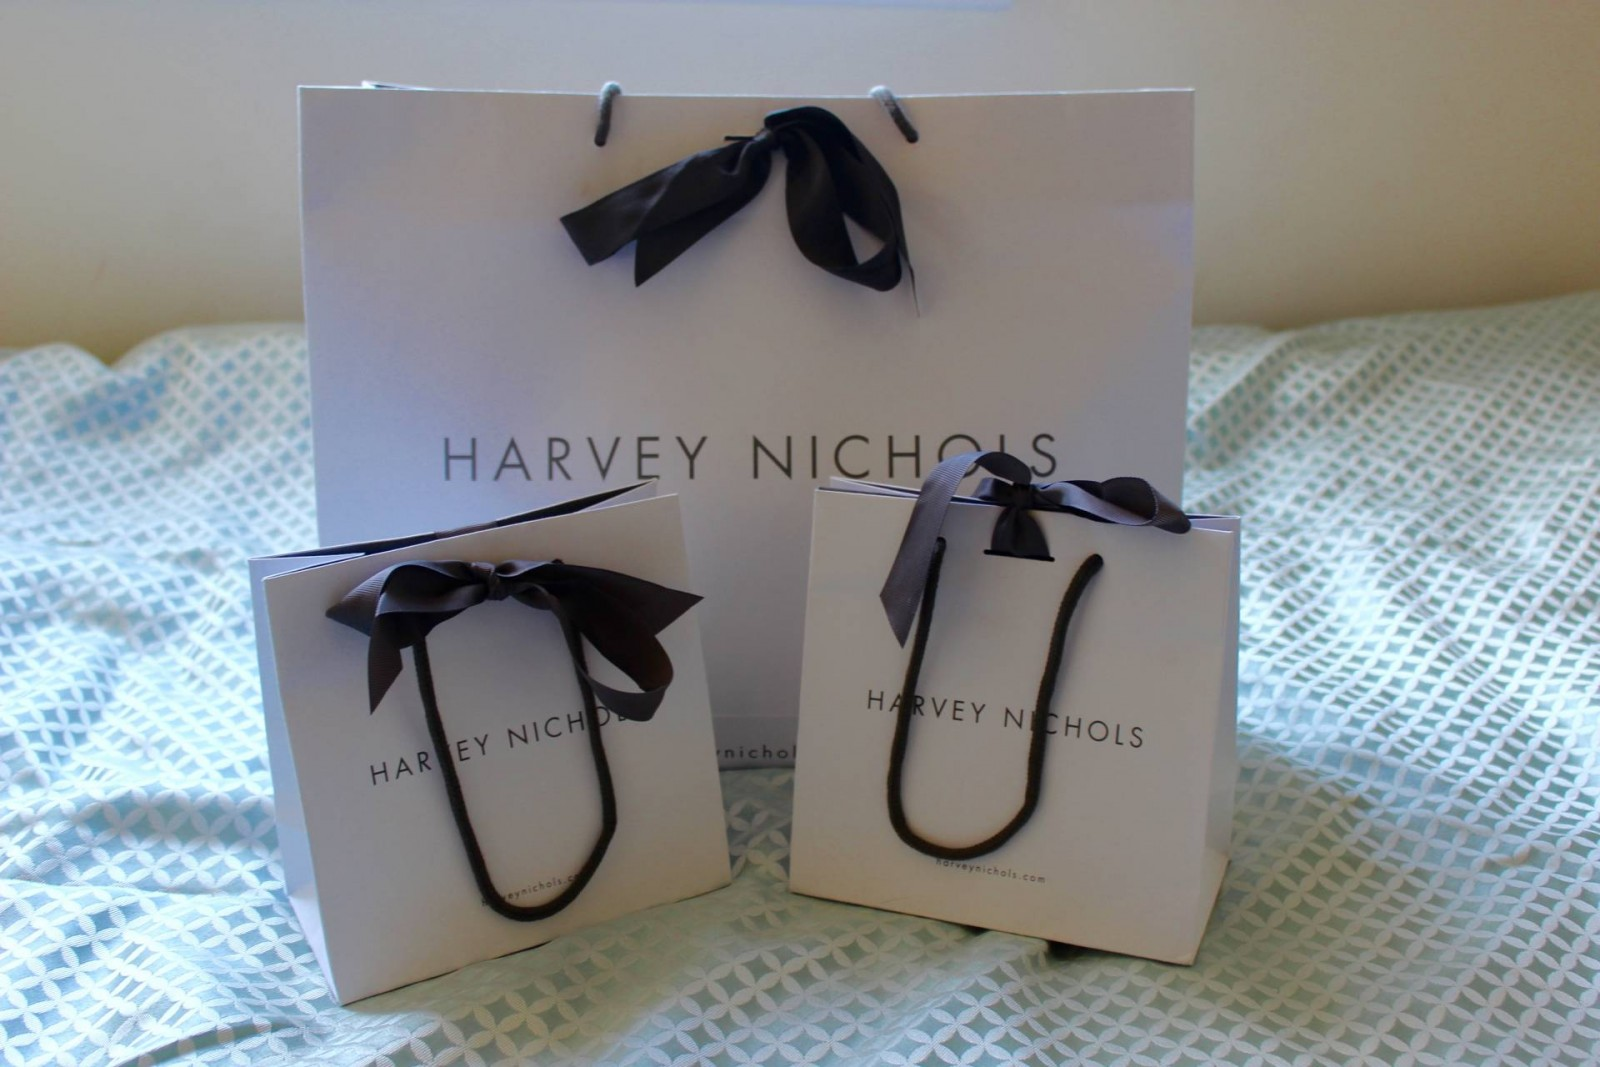 Harvey Nichols shopping bags